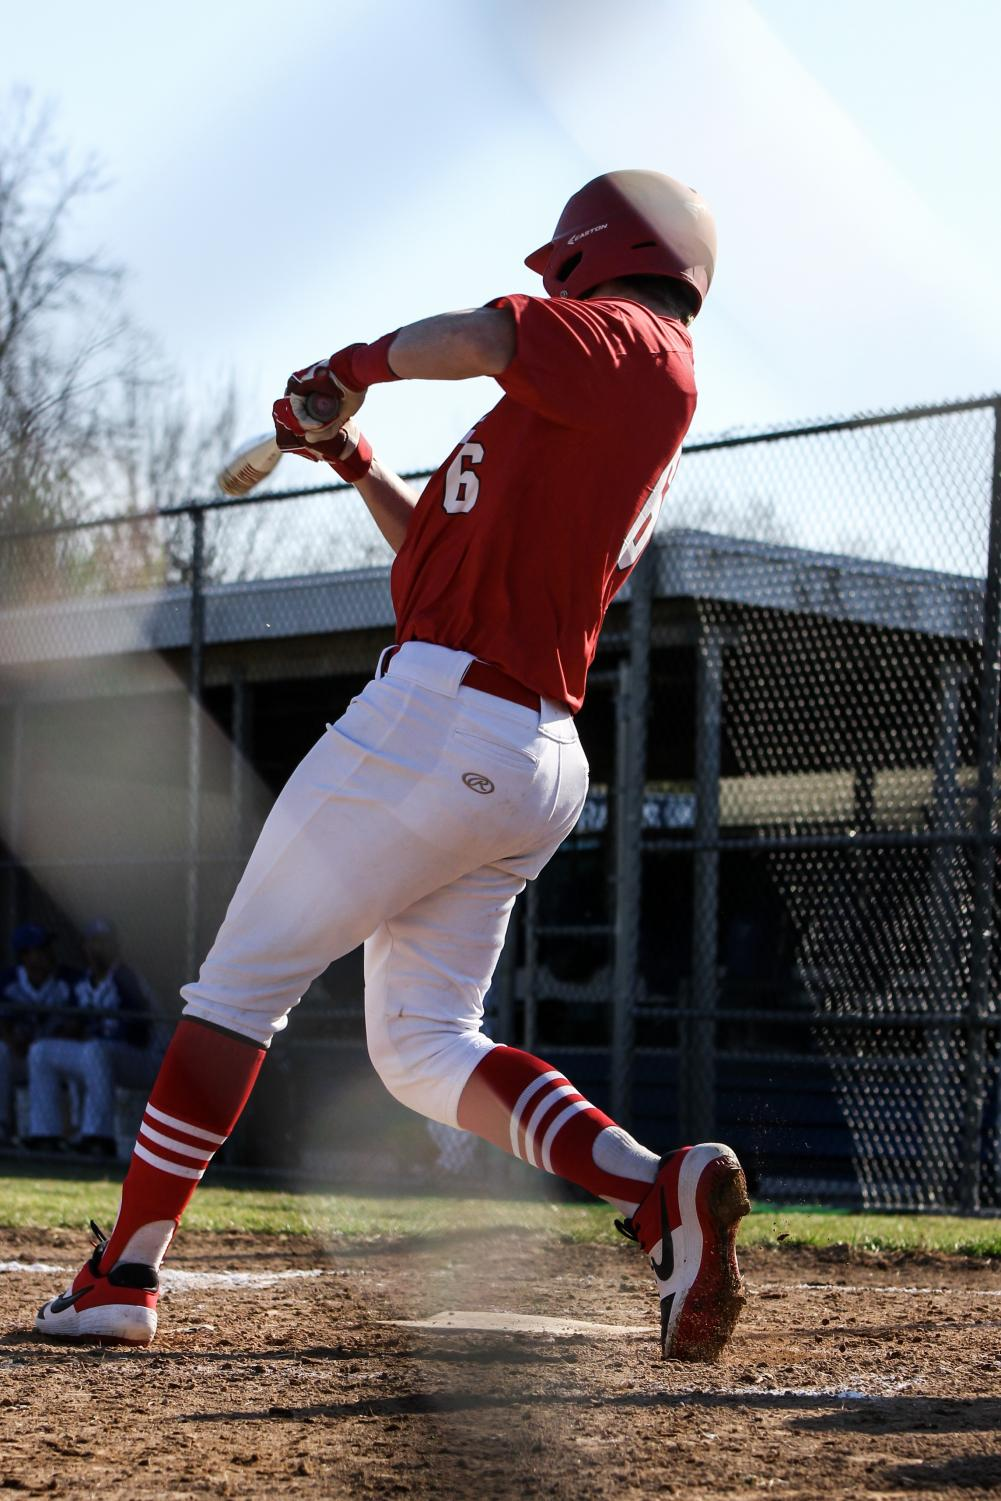 Taking+a+step%2C+Tate+Howell%2C+senior%2C+hit+the+ball+to+right+field+and+gets+a+single+run++against+the+Ladue+Rams+Mar.+26.